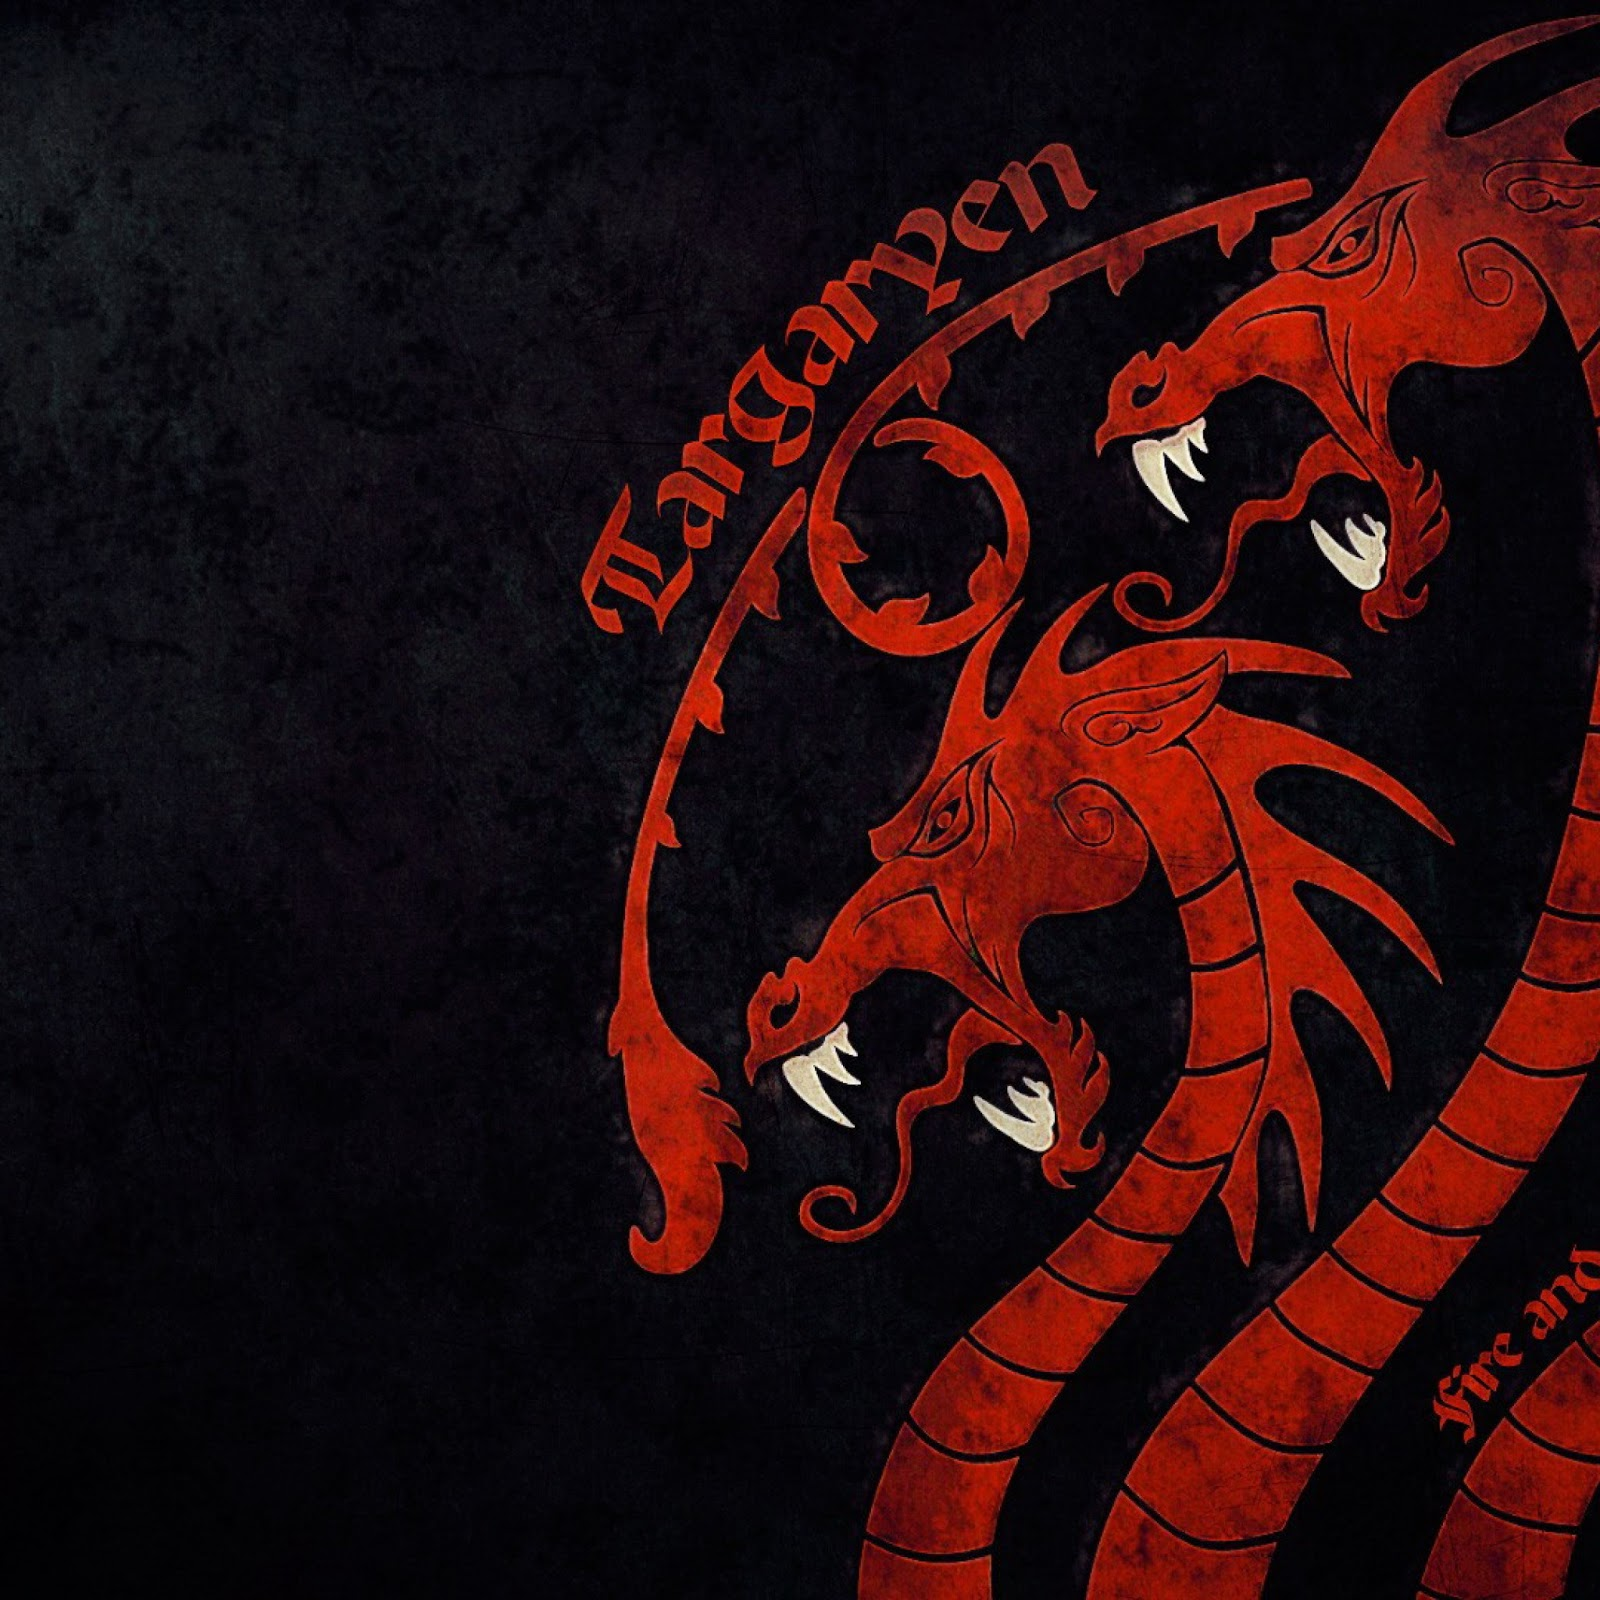 Motto Of House Targaryen: Fire And Blood